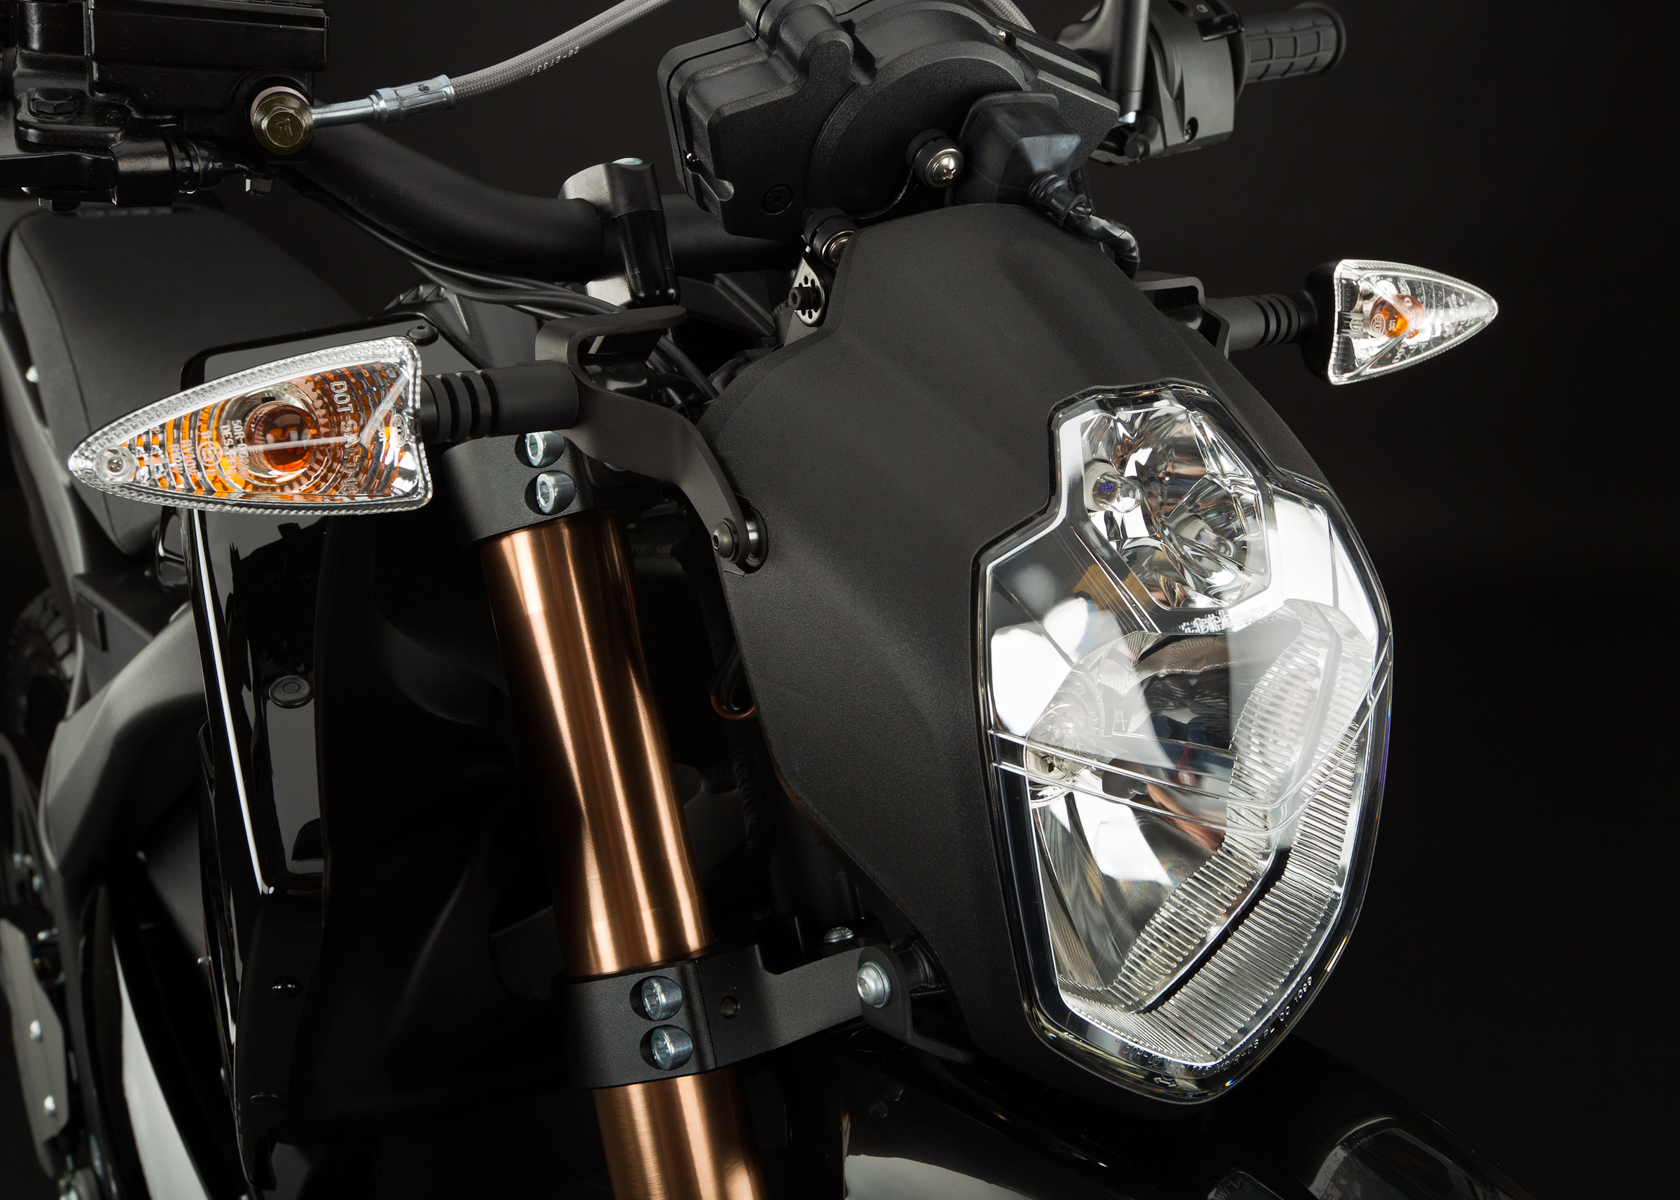 2012 Zero DS Electric Motorcycle: Headlight